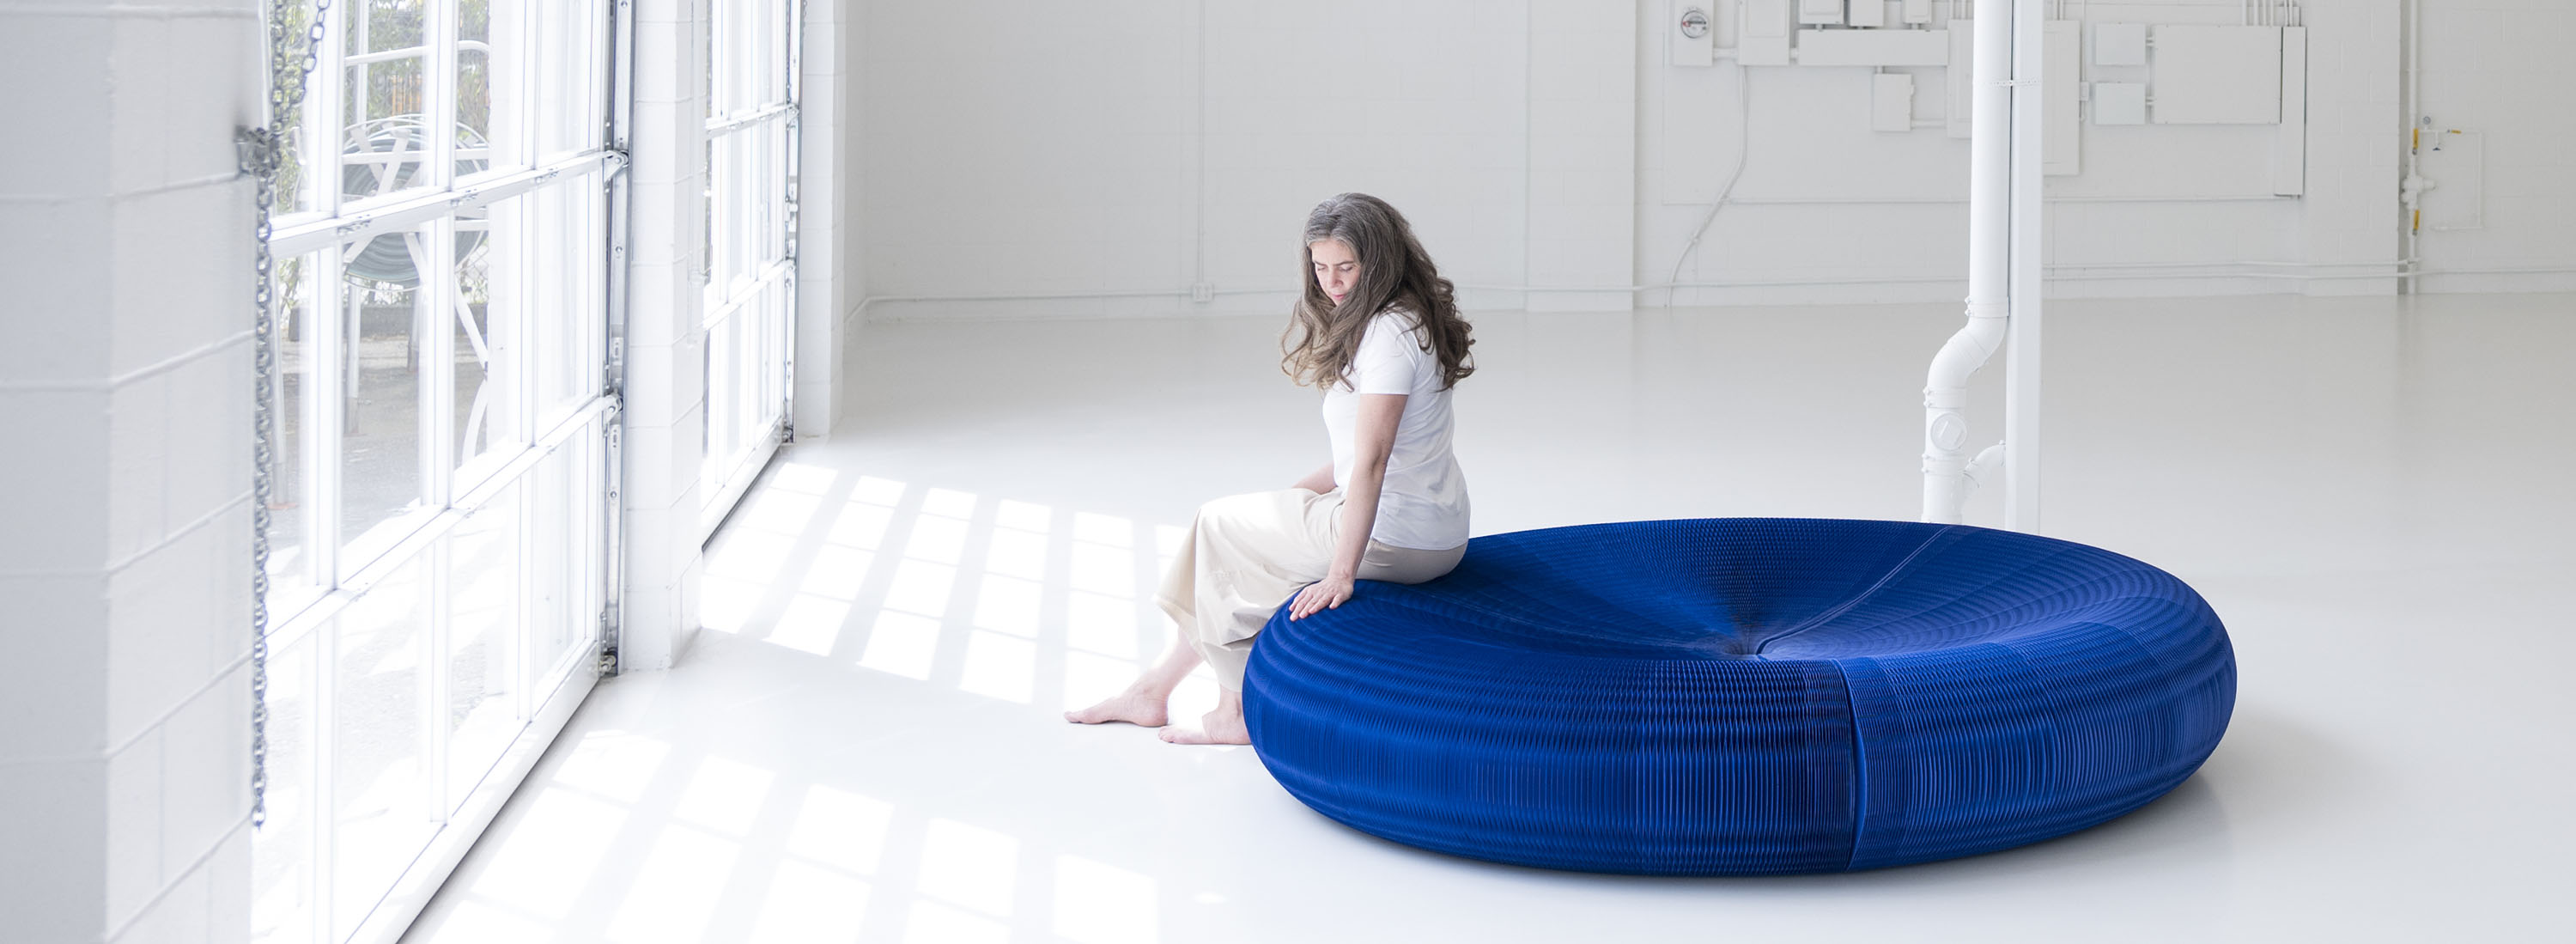 molo softseating lounger